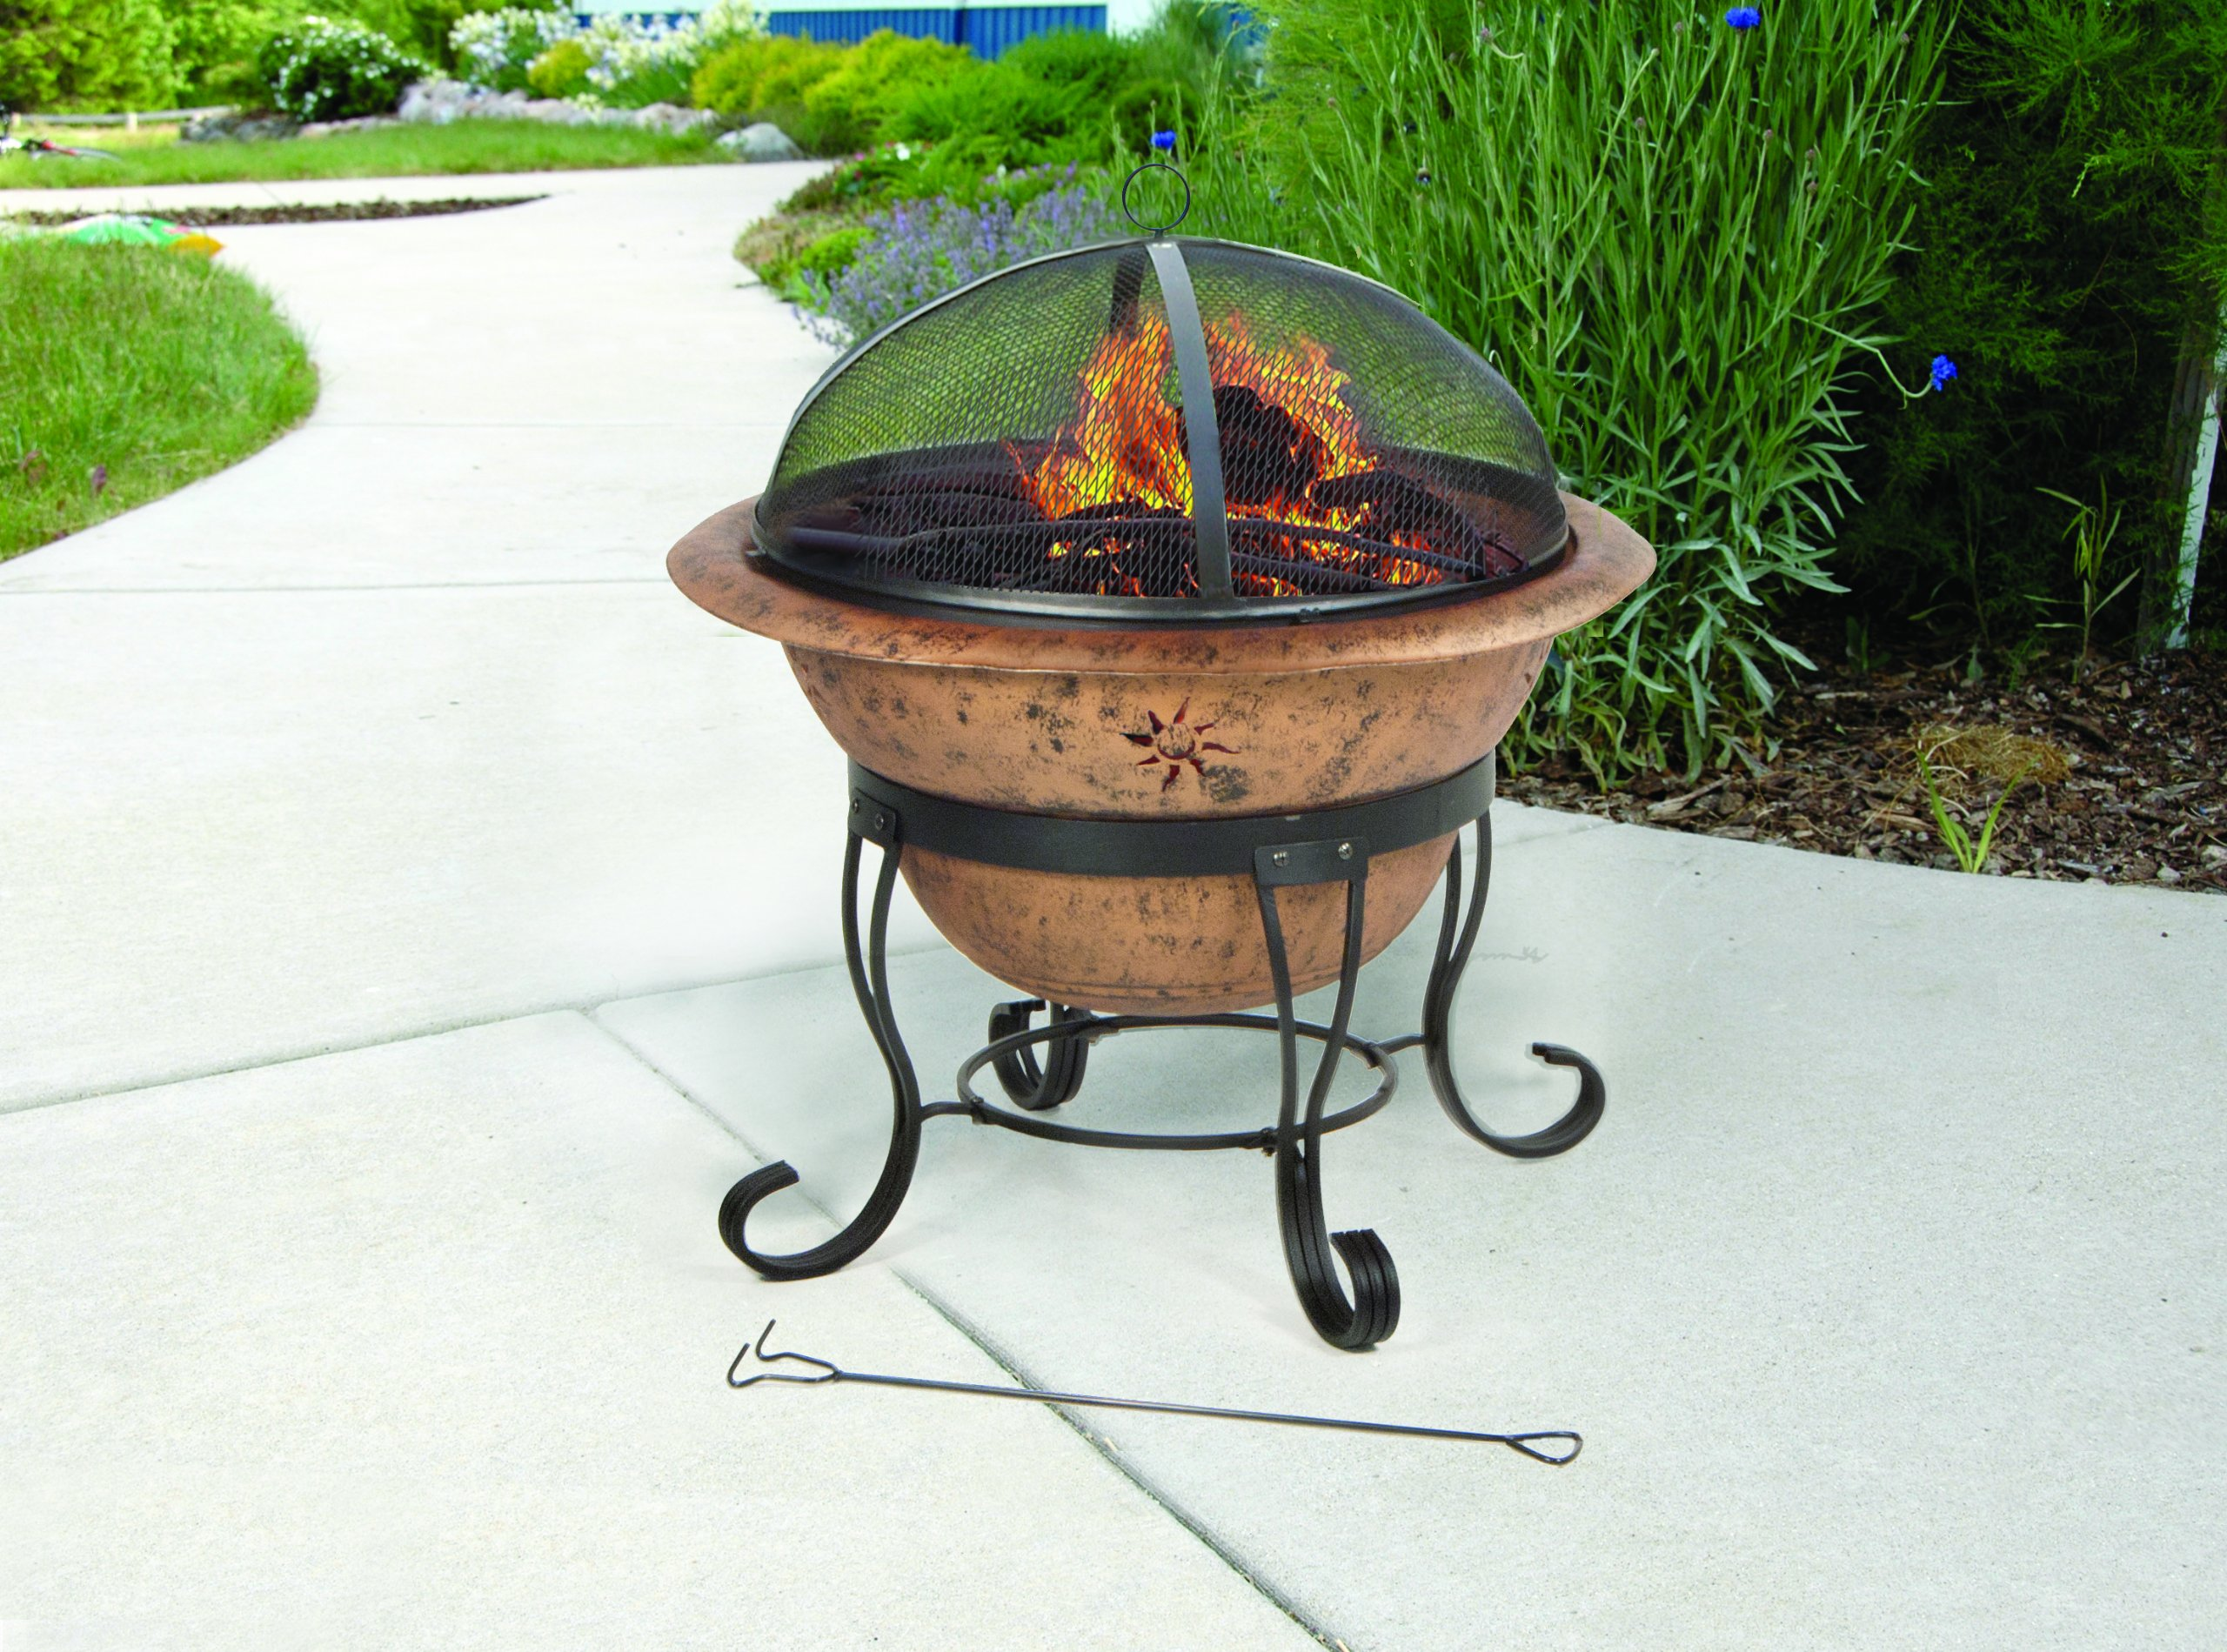 DeckMate Kay Home Product's Soleil Steel Fire Bowl - Decorative sunburst cutouts enhance warmth and glow from this stylish outdoor fireplace The steel log grate allows circulation and air flow A high domed wire mesh screen provides protection from sparks and allows for an open view of the fire - patio, outdoor-decor, fire-pits-outdoor-fireplaces - 918bc%2BrMtwL -